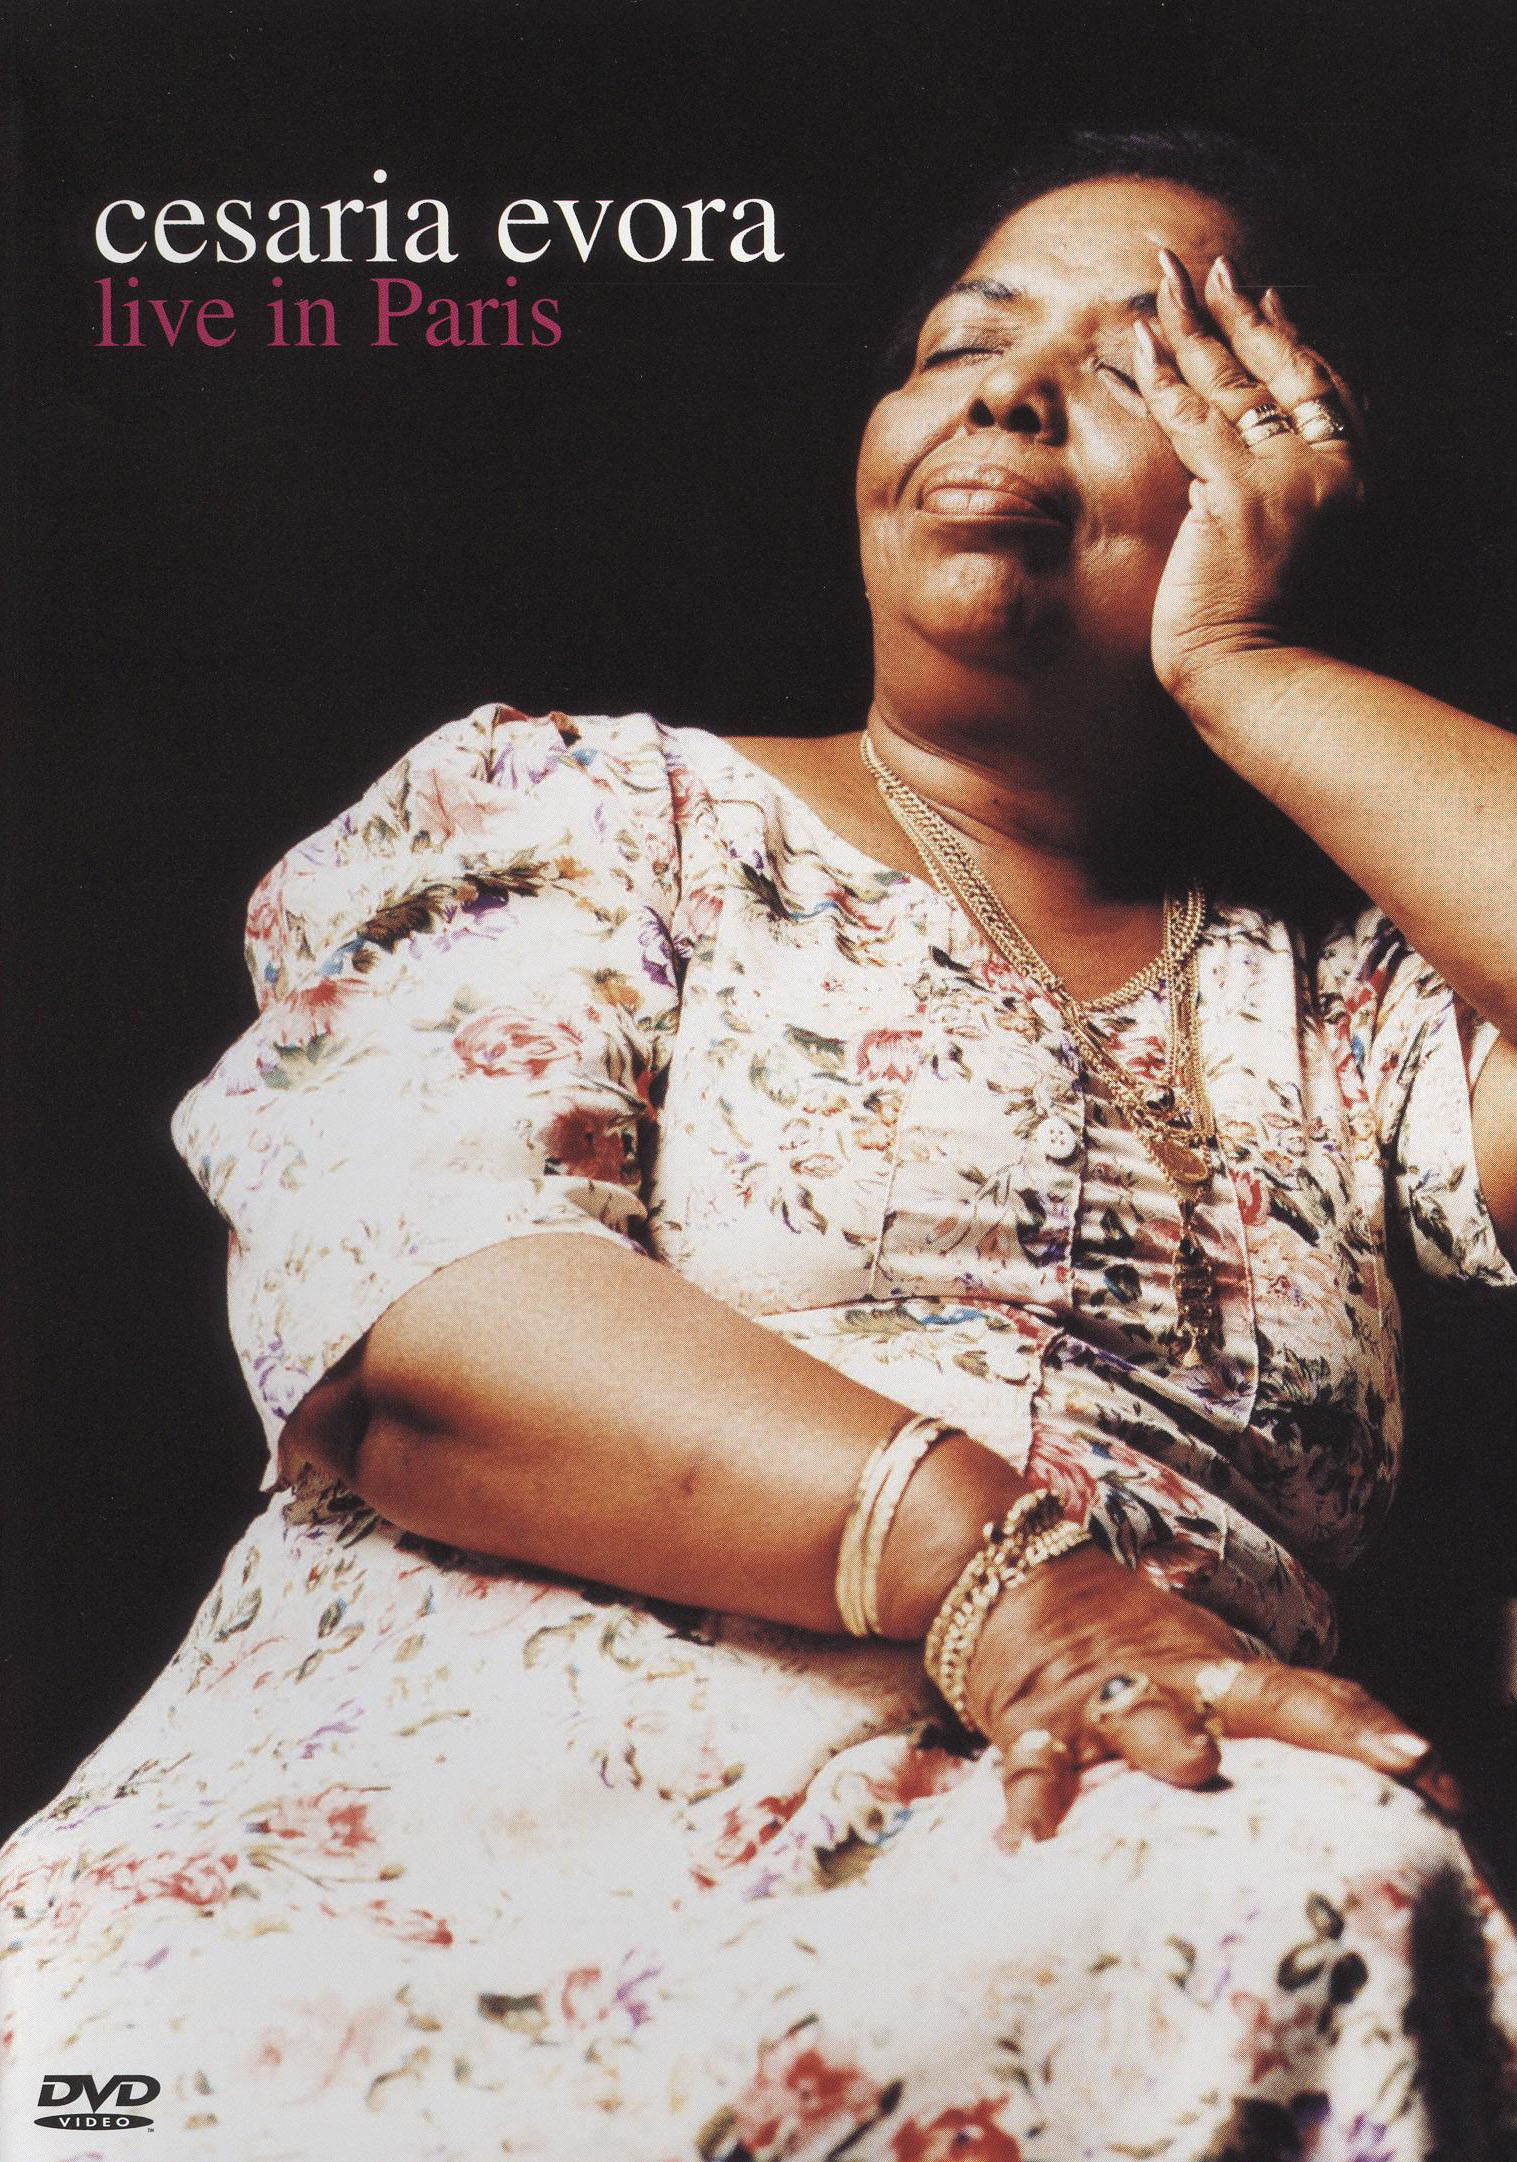 Cesaria Evora: Live in Paris